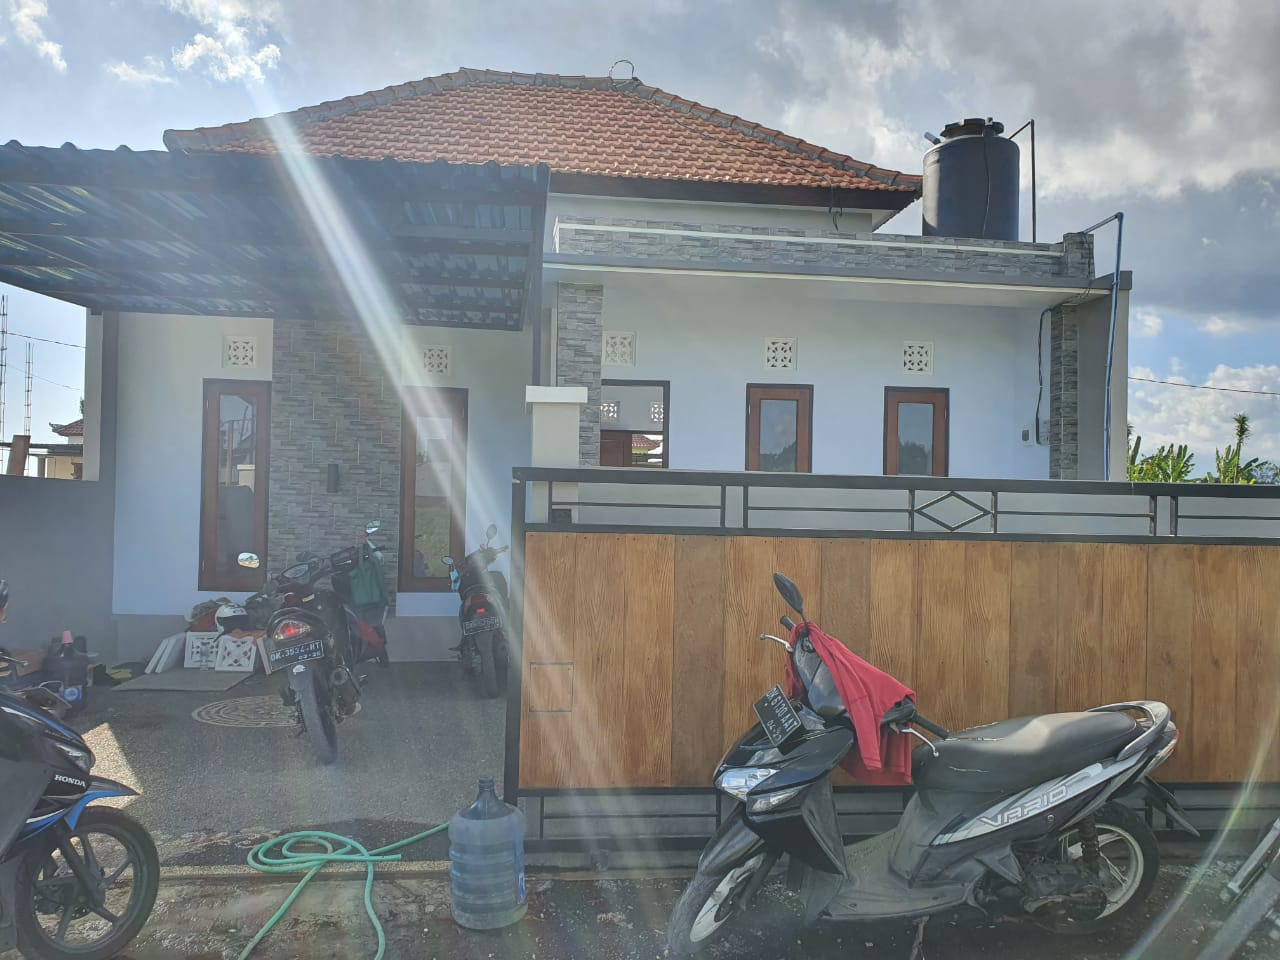 House For Sale in New Housing Complex In Kediri Tabanan, 5 Unit Left